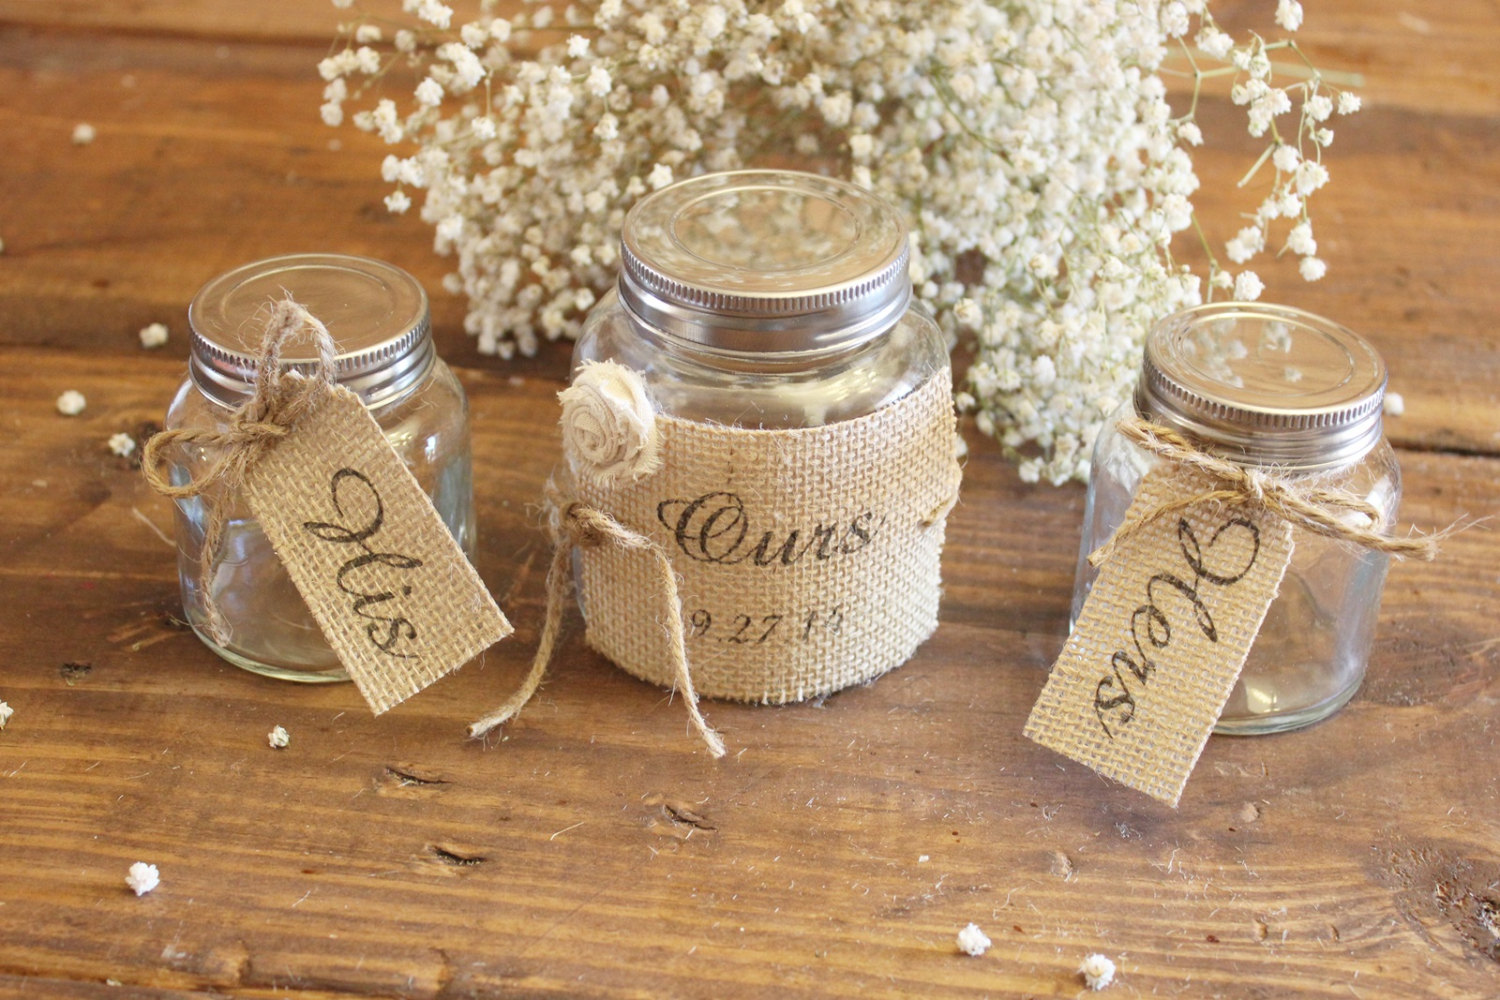 rustic sand ceremony mason jars wrapped in burlap | 50 Best Burlap Wedding Ideas | via http://emmalinebride.com/decor/burlap-wedding-ideas/